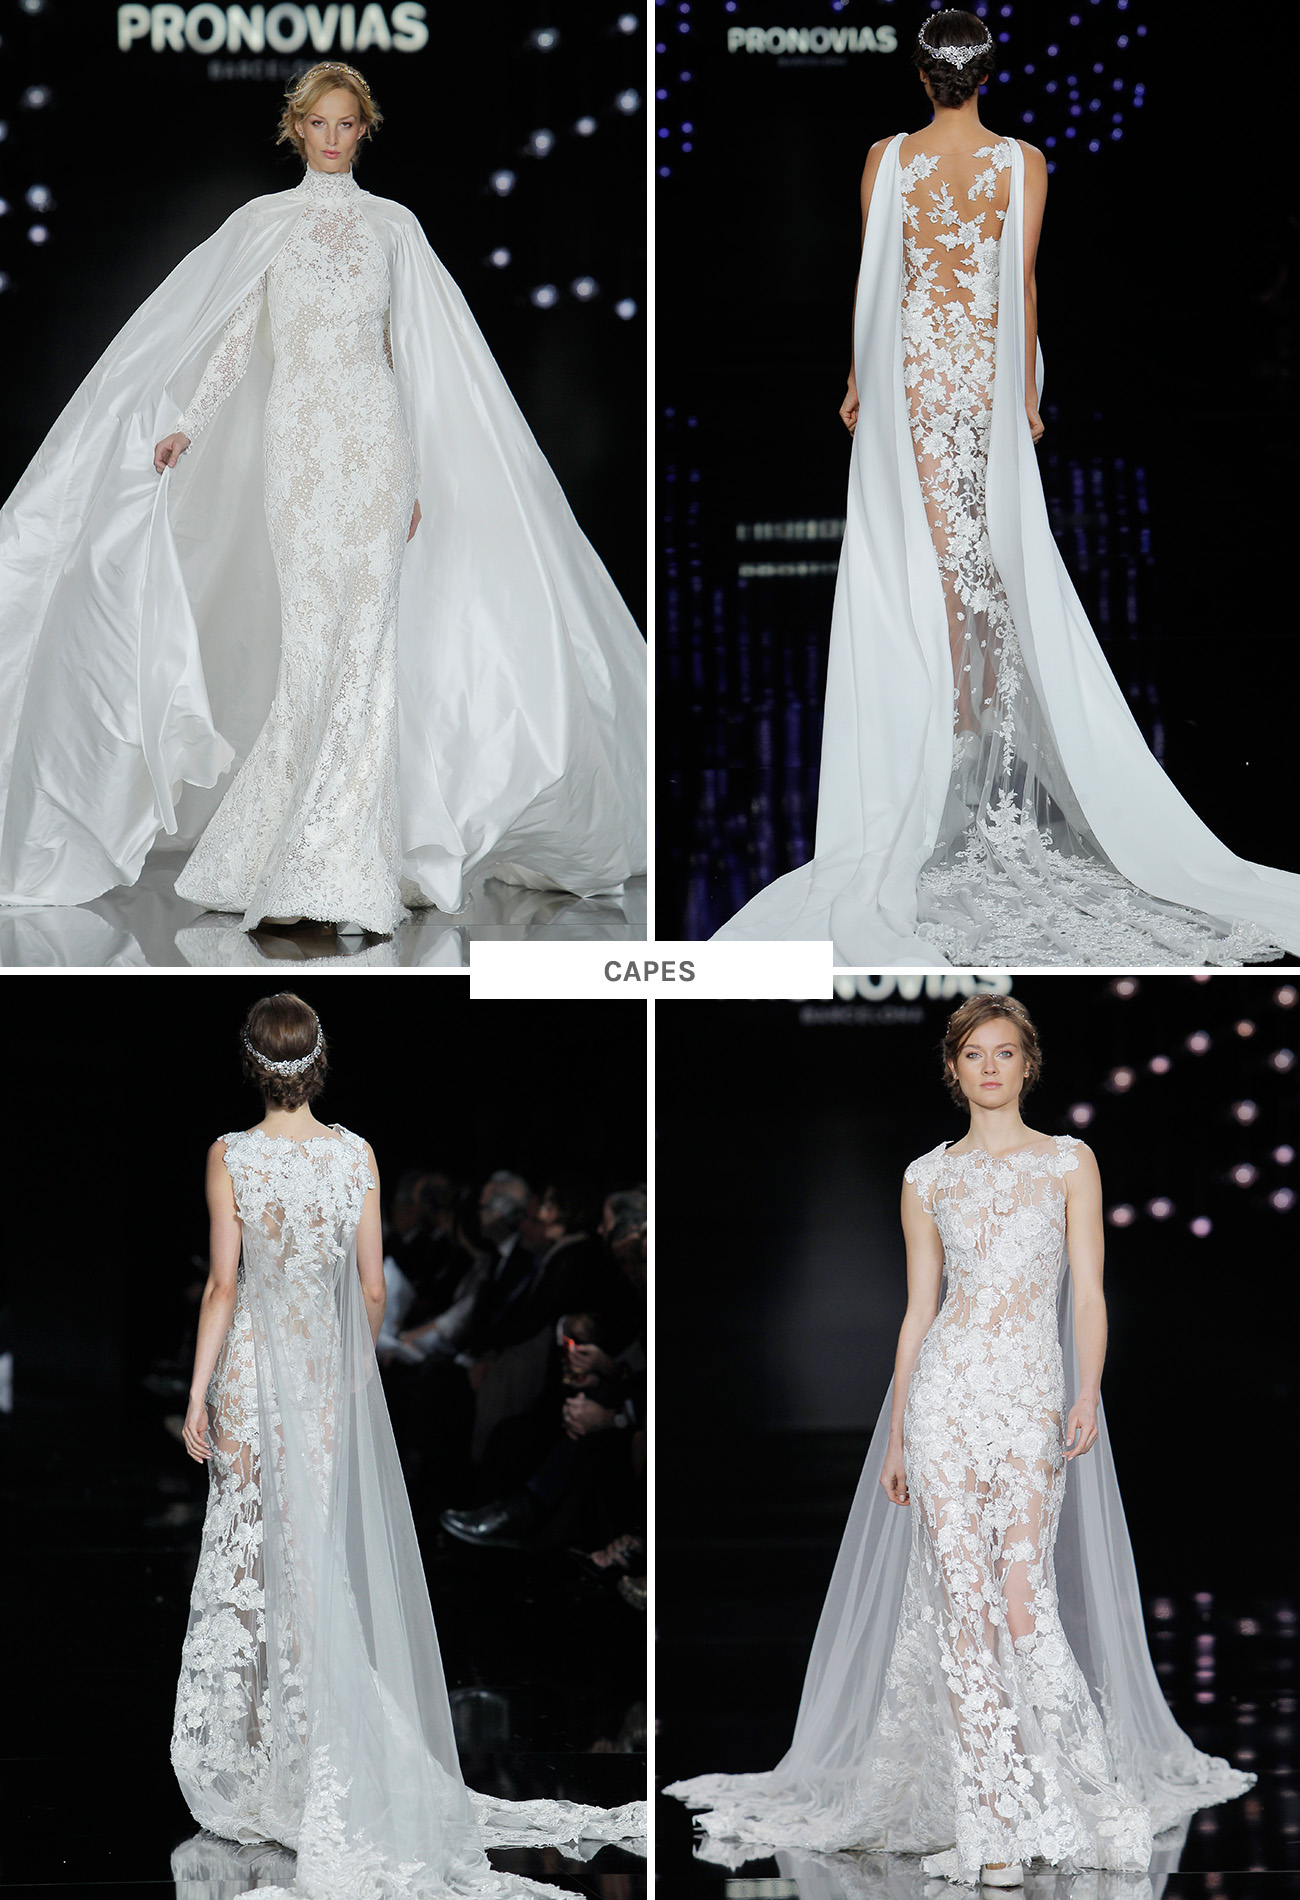 Pronovias Wedding Dresses with capes from Barcelona Bridal Week